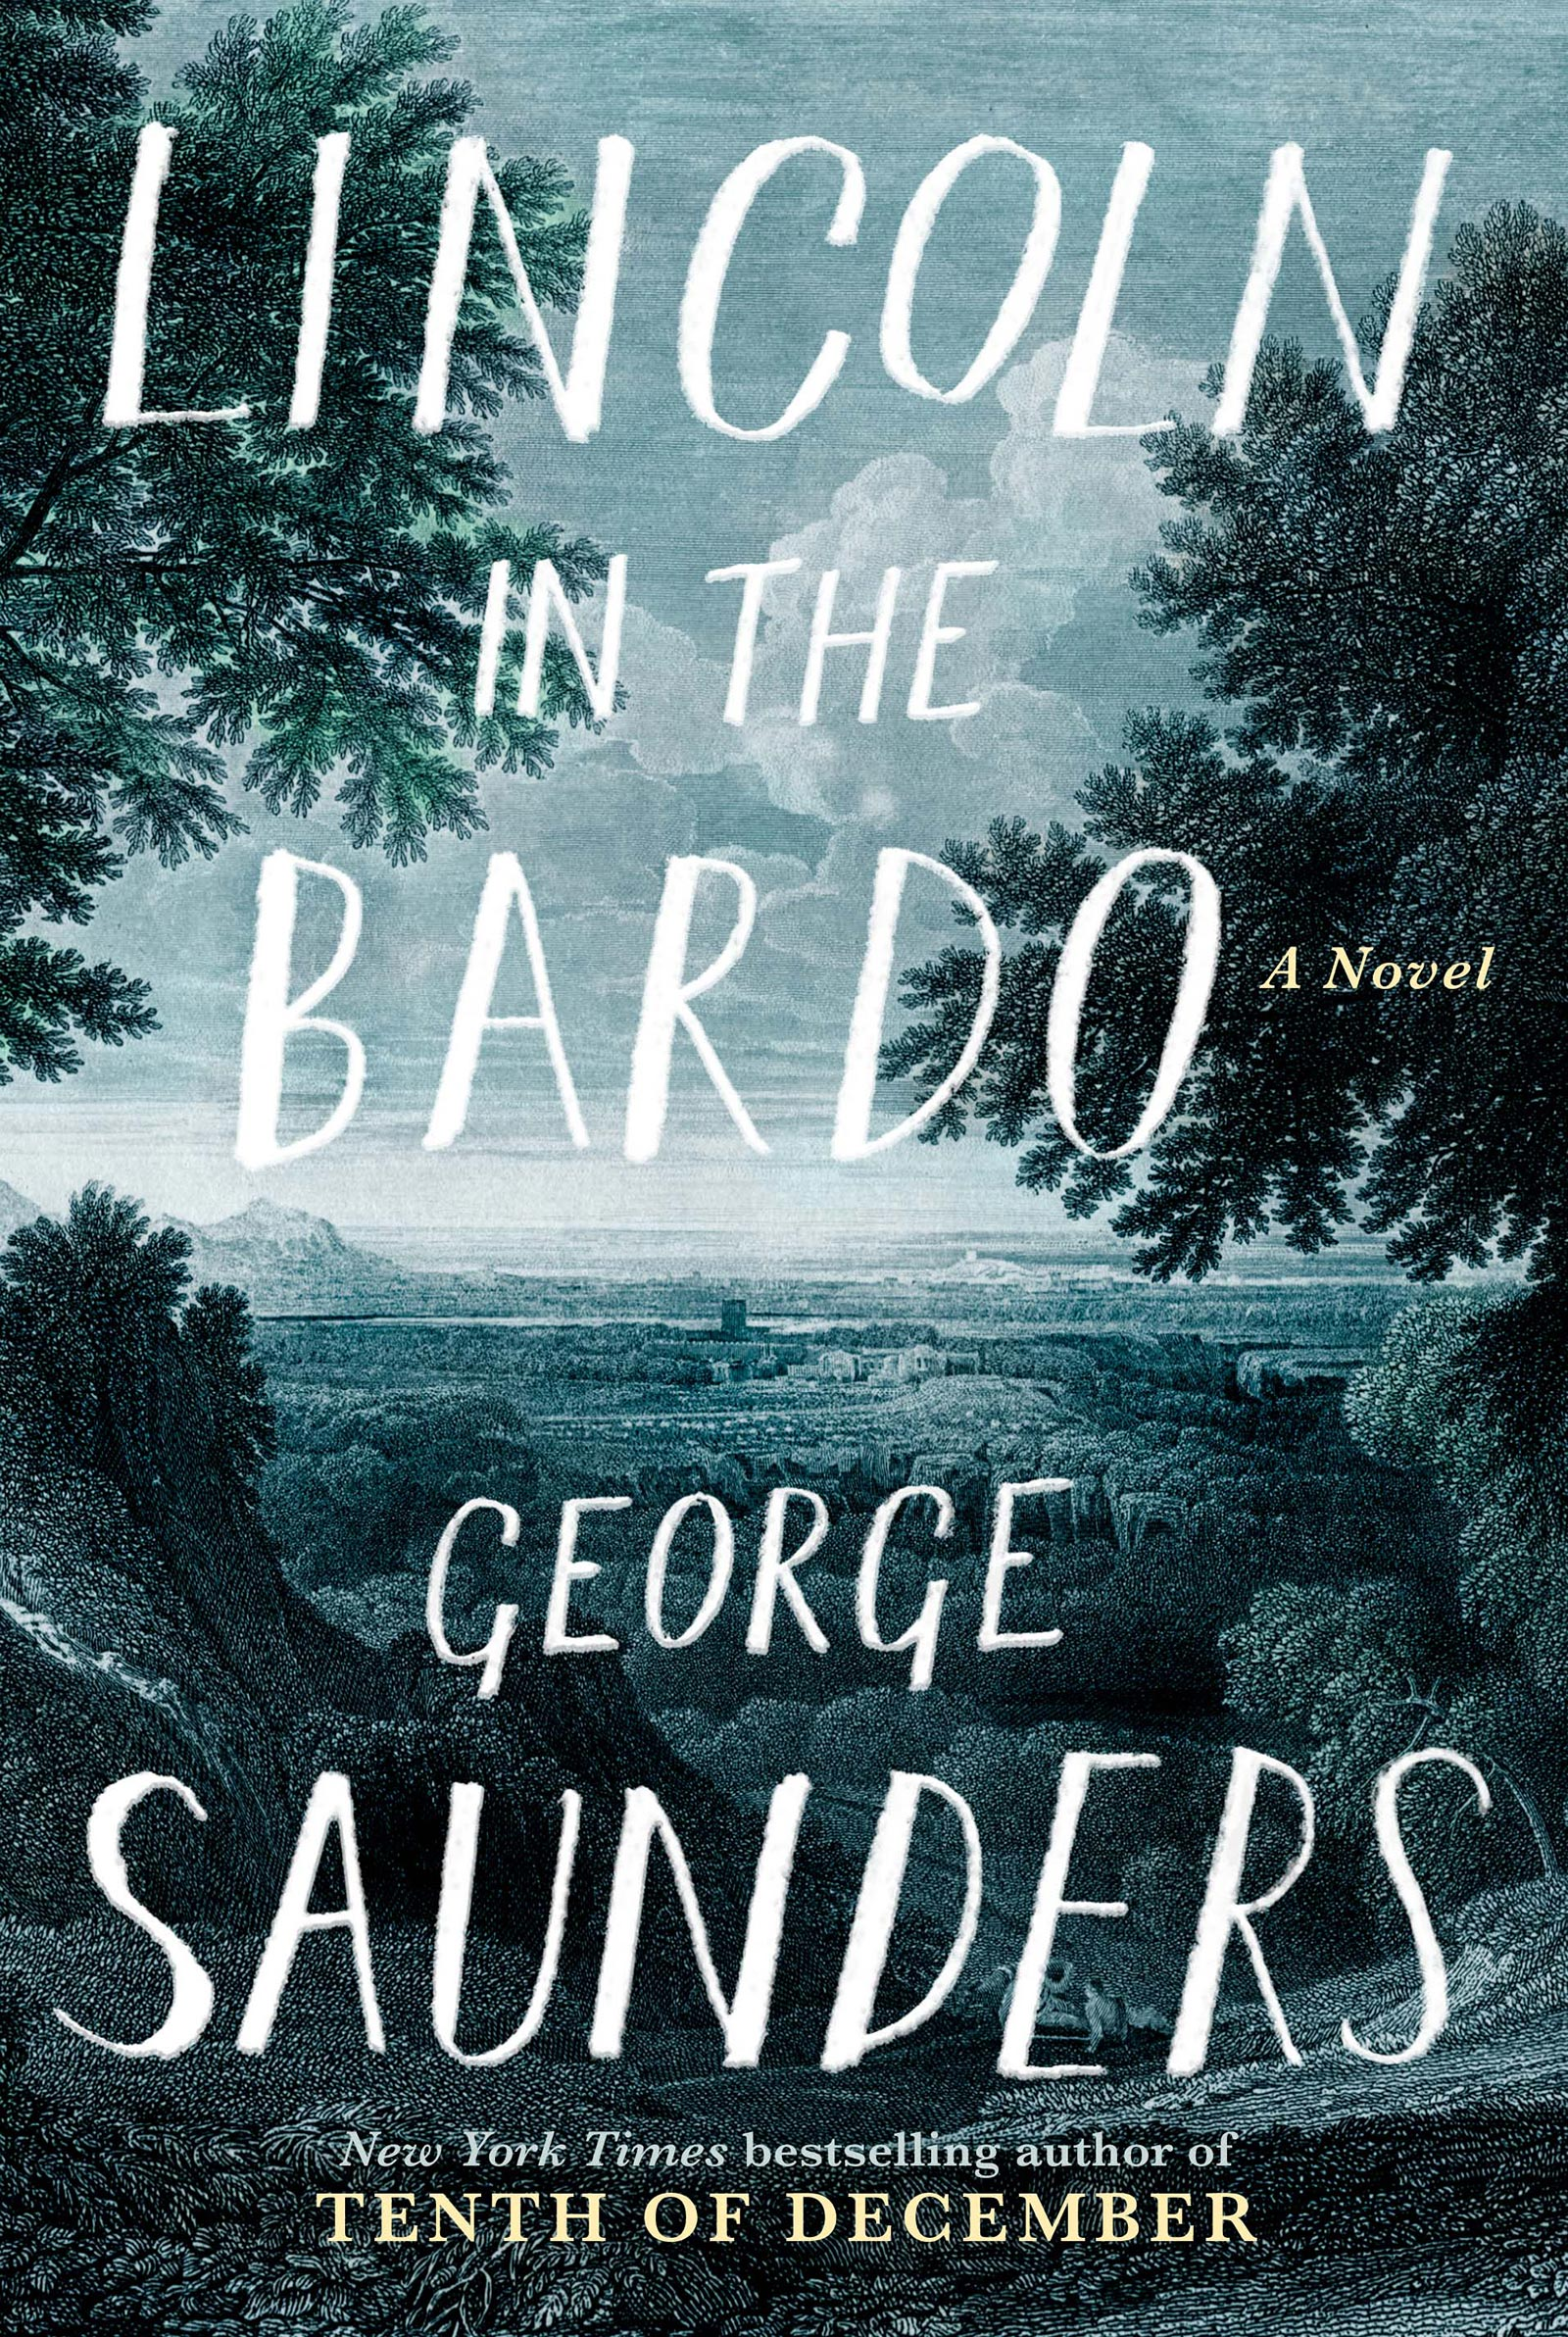 Lincoln in the Bardo: A Novel (2/14/17)by George Saunders